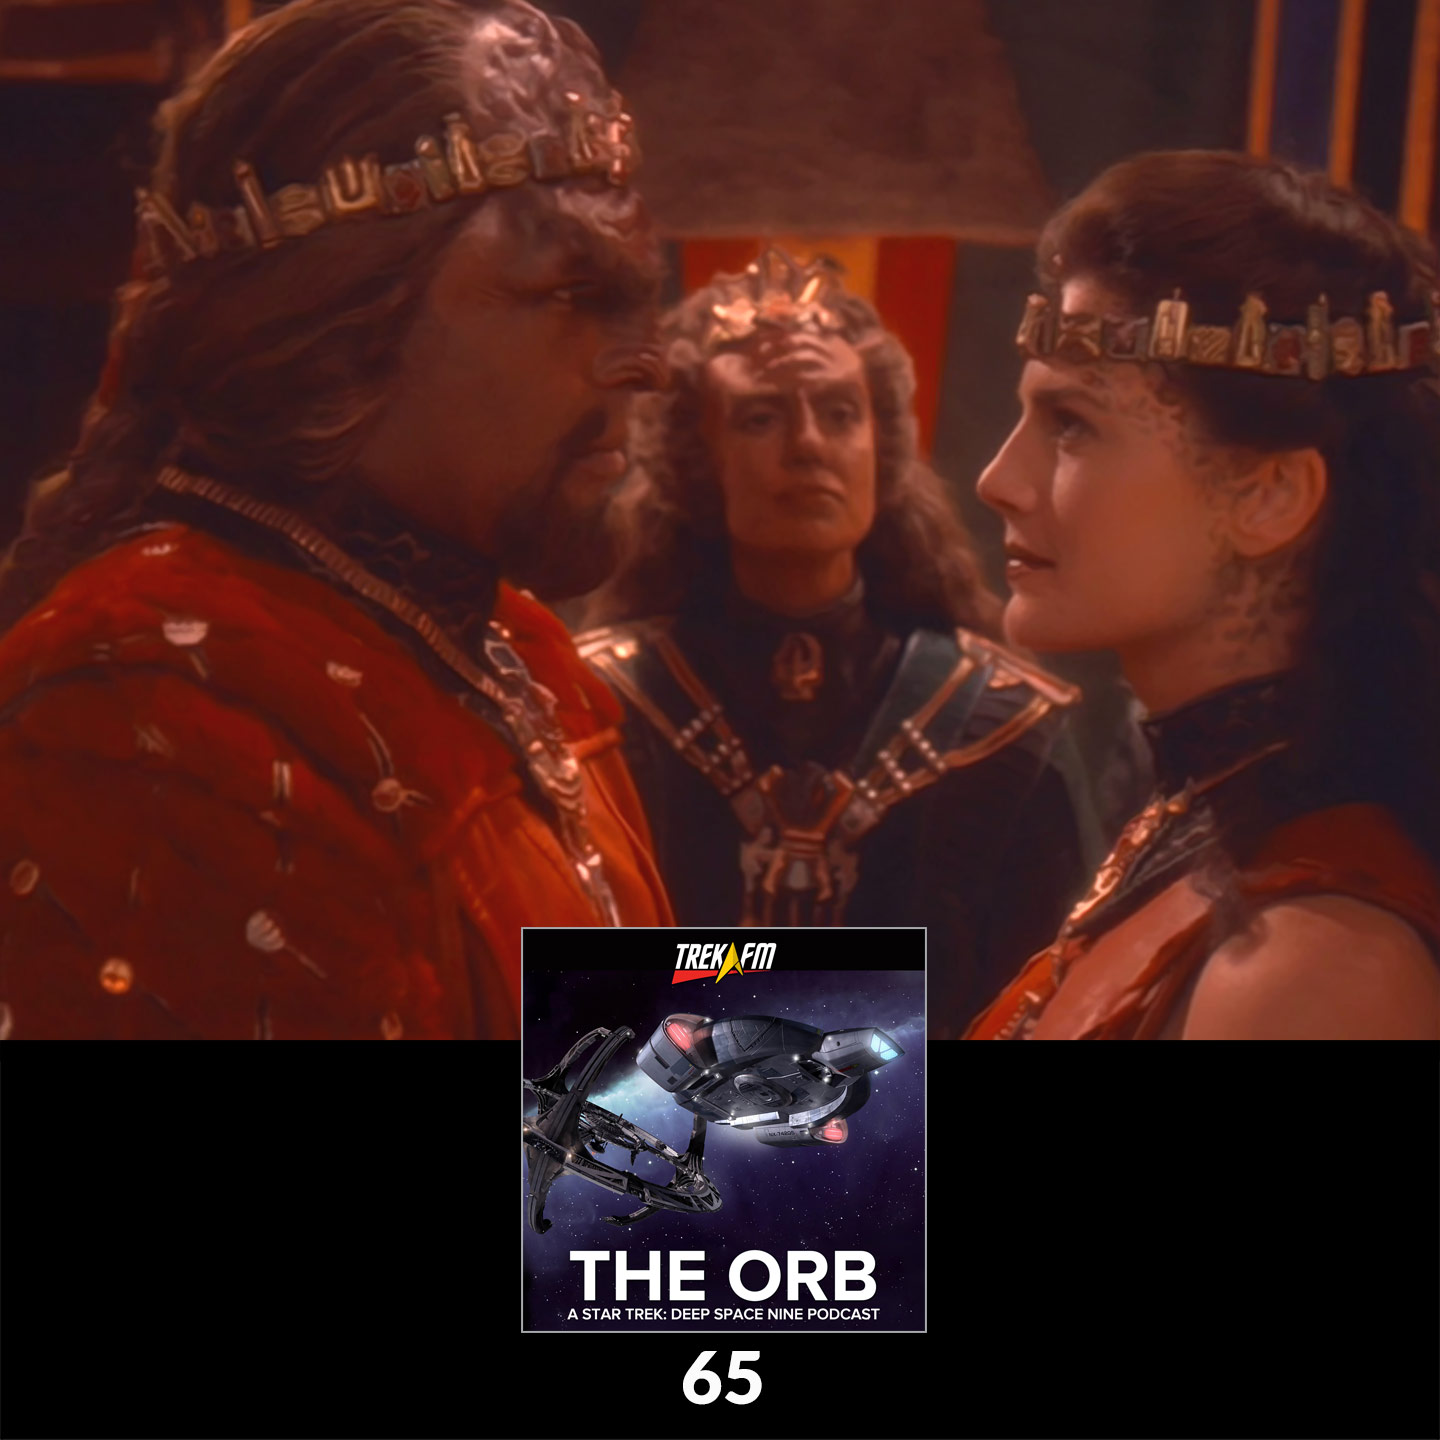 The Orb 65: Song, Ritual, and Unbridled Passions